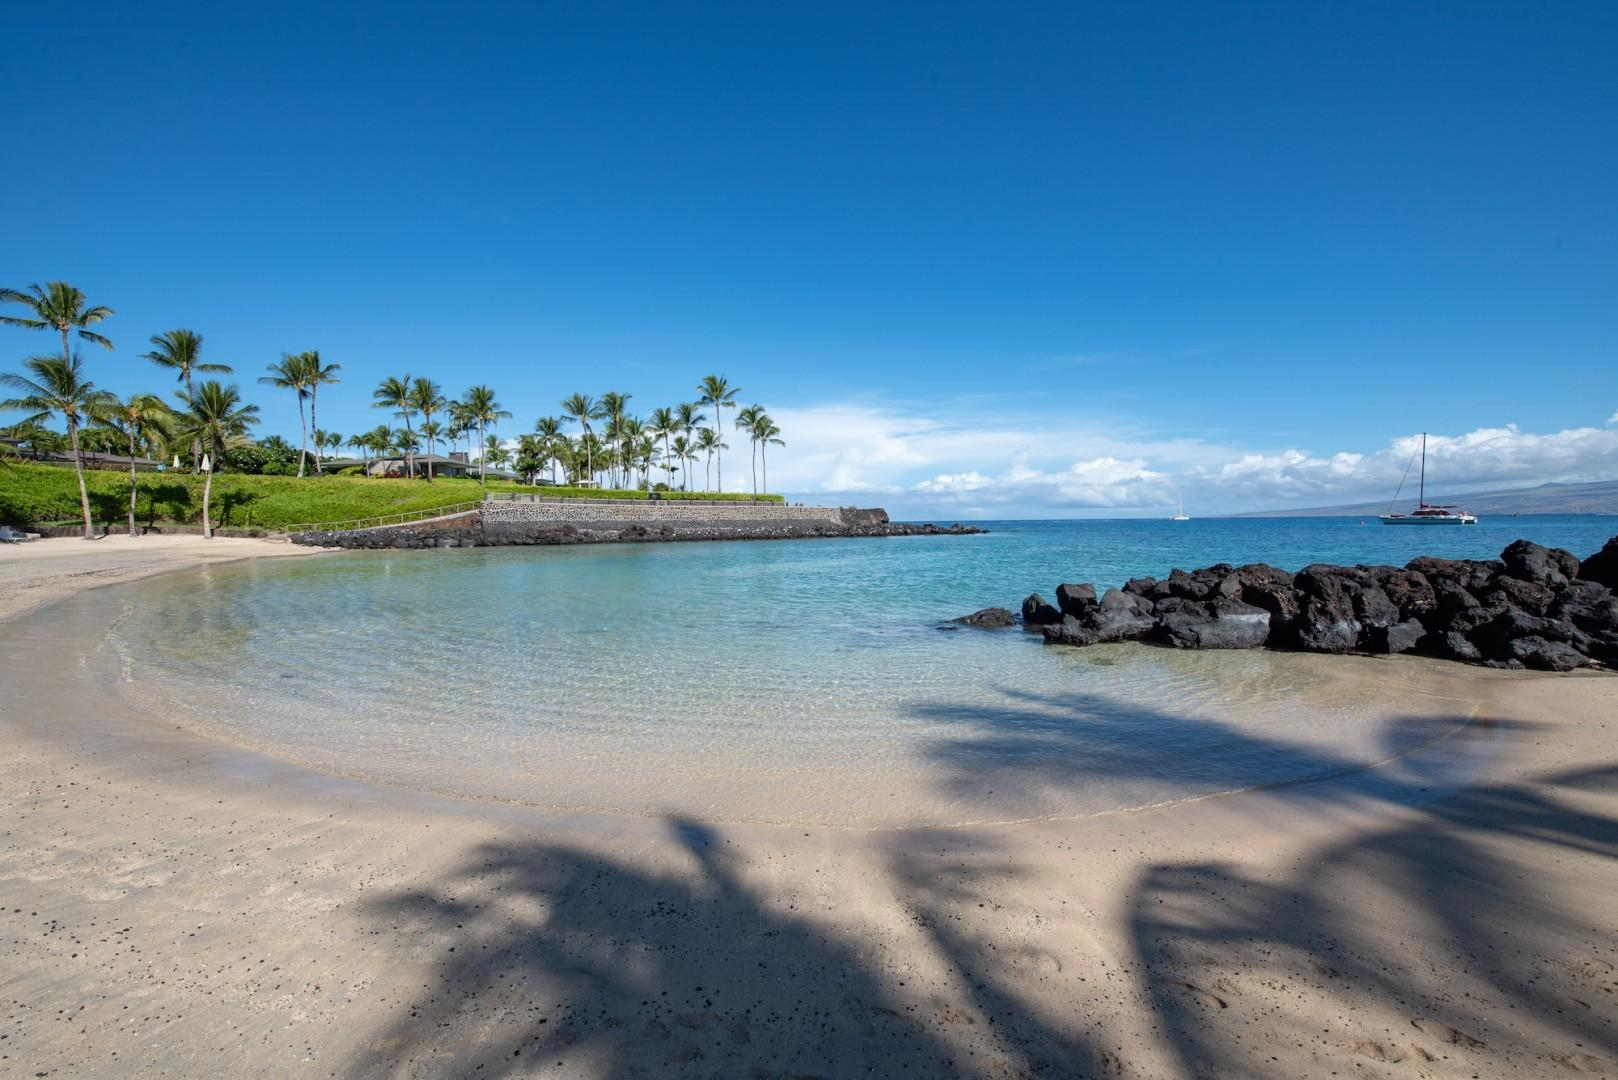 This Kohala Coast vacation home on the Big Island of Hawaii allows easy access (2 minute drive) to the white sands of magnificent Mauna Lani Beach and the exclusive Mauna Lani Beach Club